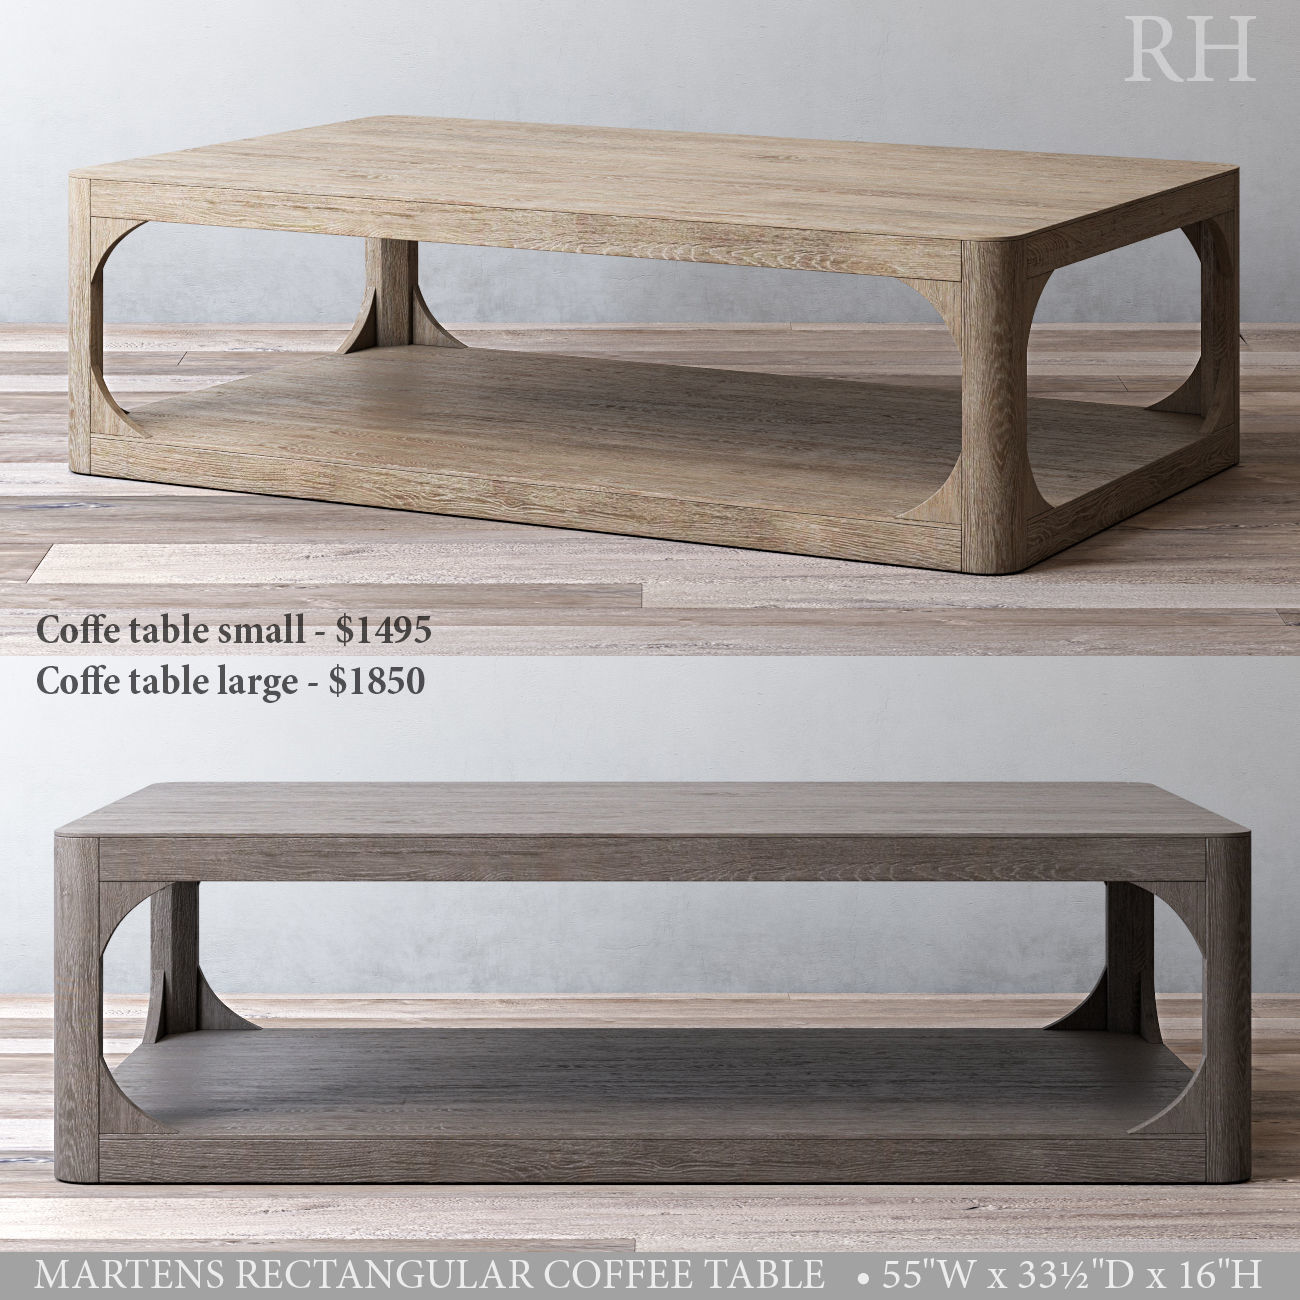 Ordinaire Rh Martens Rectangular Coffee Table 3d Model Max Obj Mtl 3ds Fbx Mat 1 ...